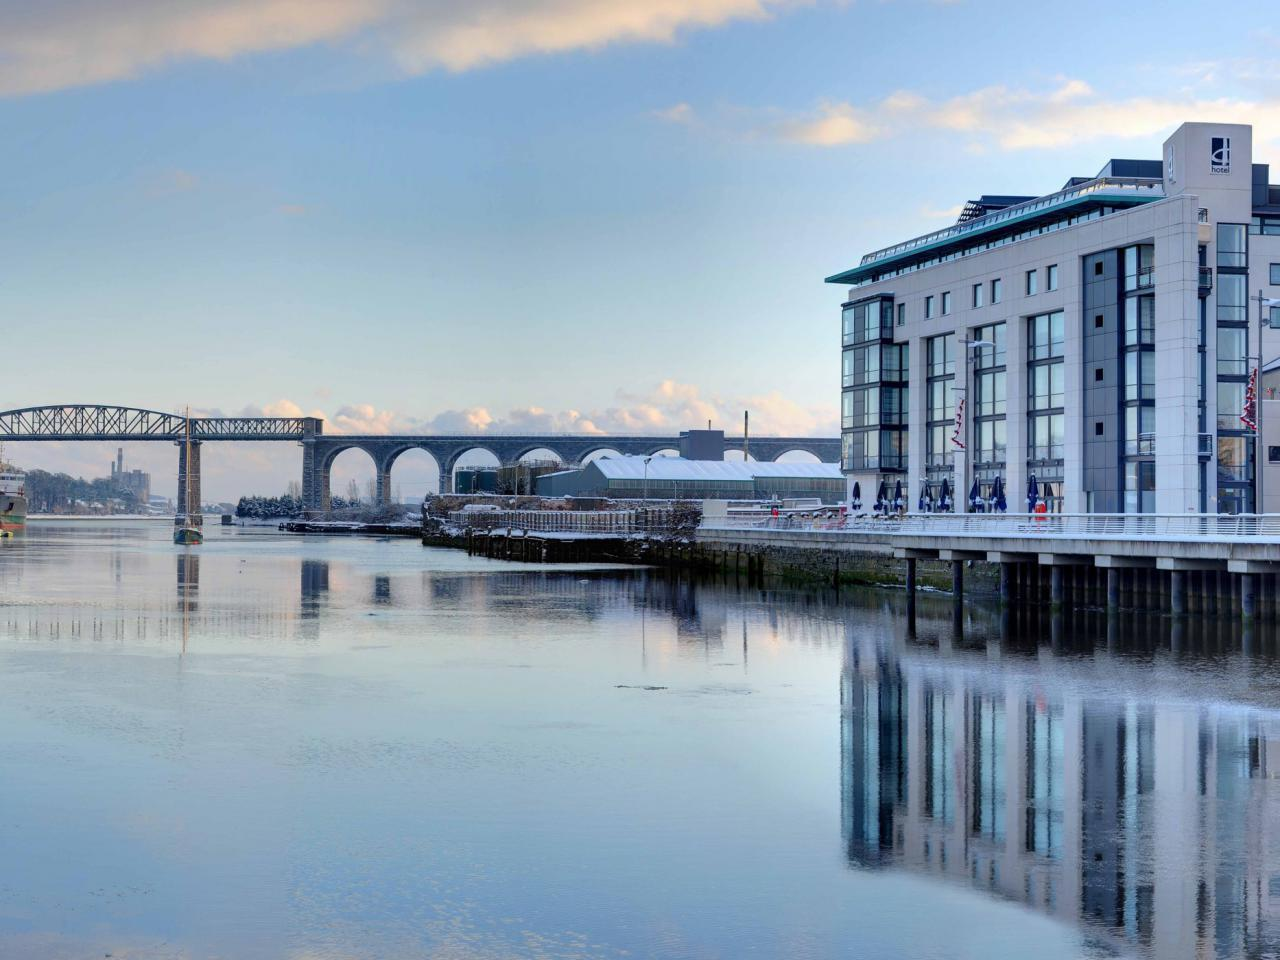 Of Drogheda' Fanciest Hotels Sold And